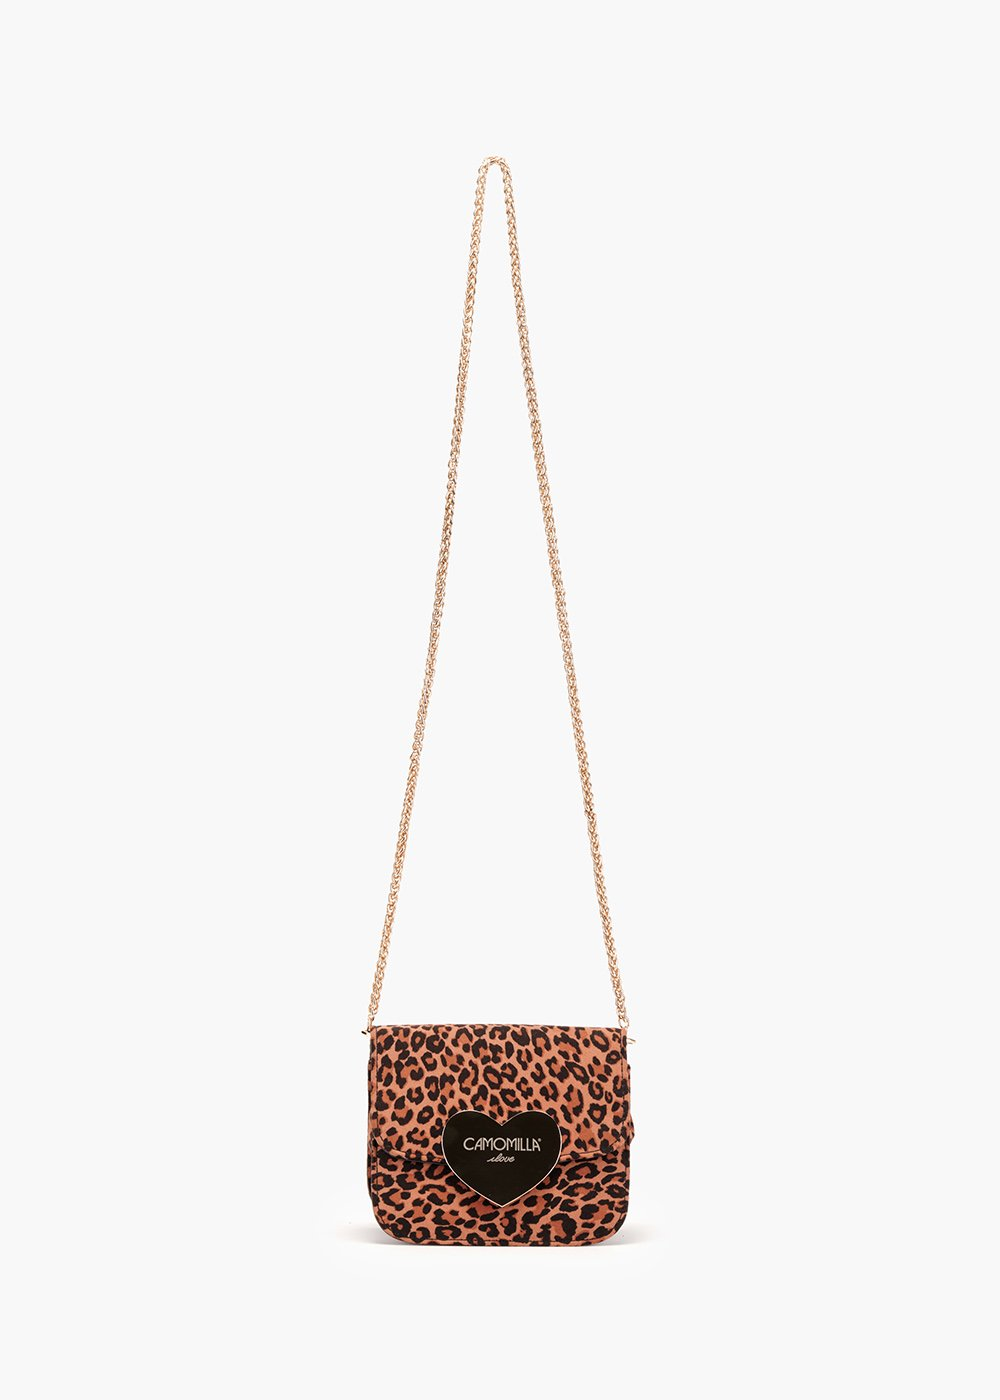 Bogota pochette in eco animalier suede - Sughero /  Marrone / Animalier - Woman